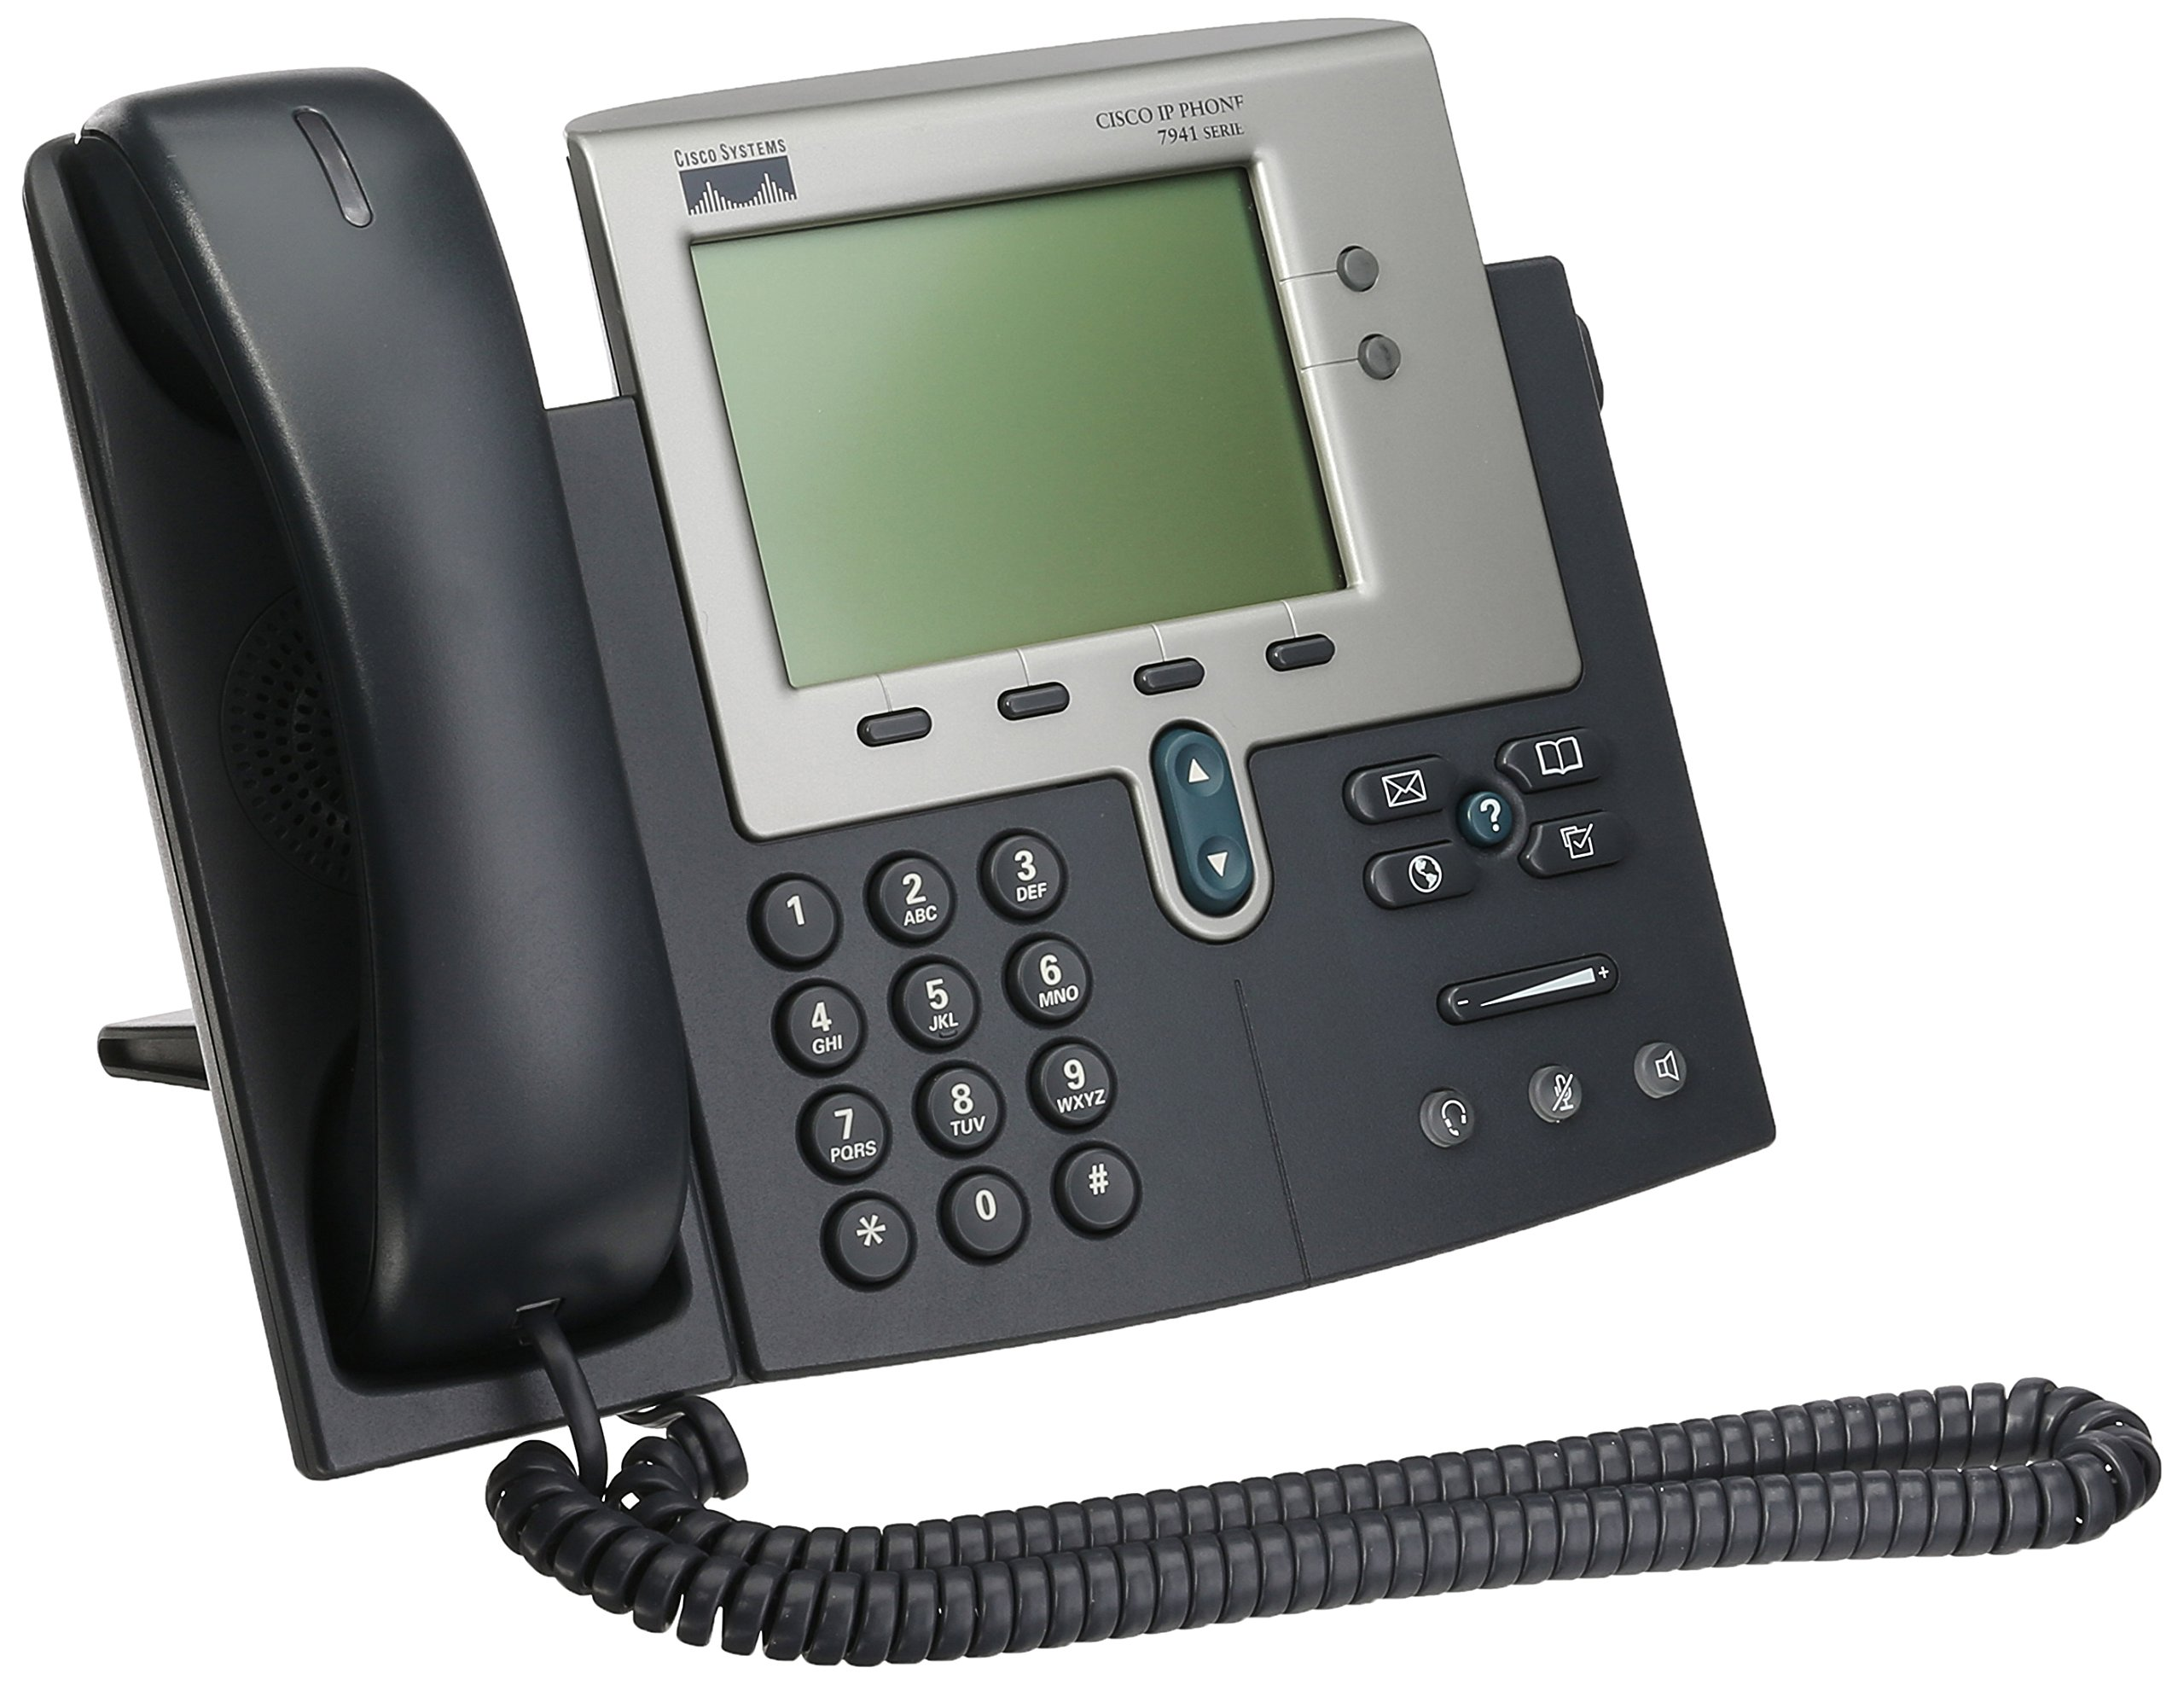 Cisco Unified IP Phone CP-7941G Unified IP Phone 7941G - Voip Phone and Device by Cisco